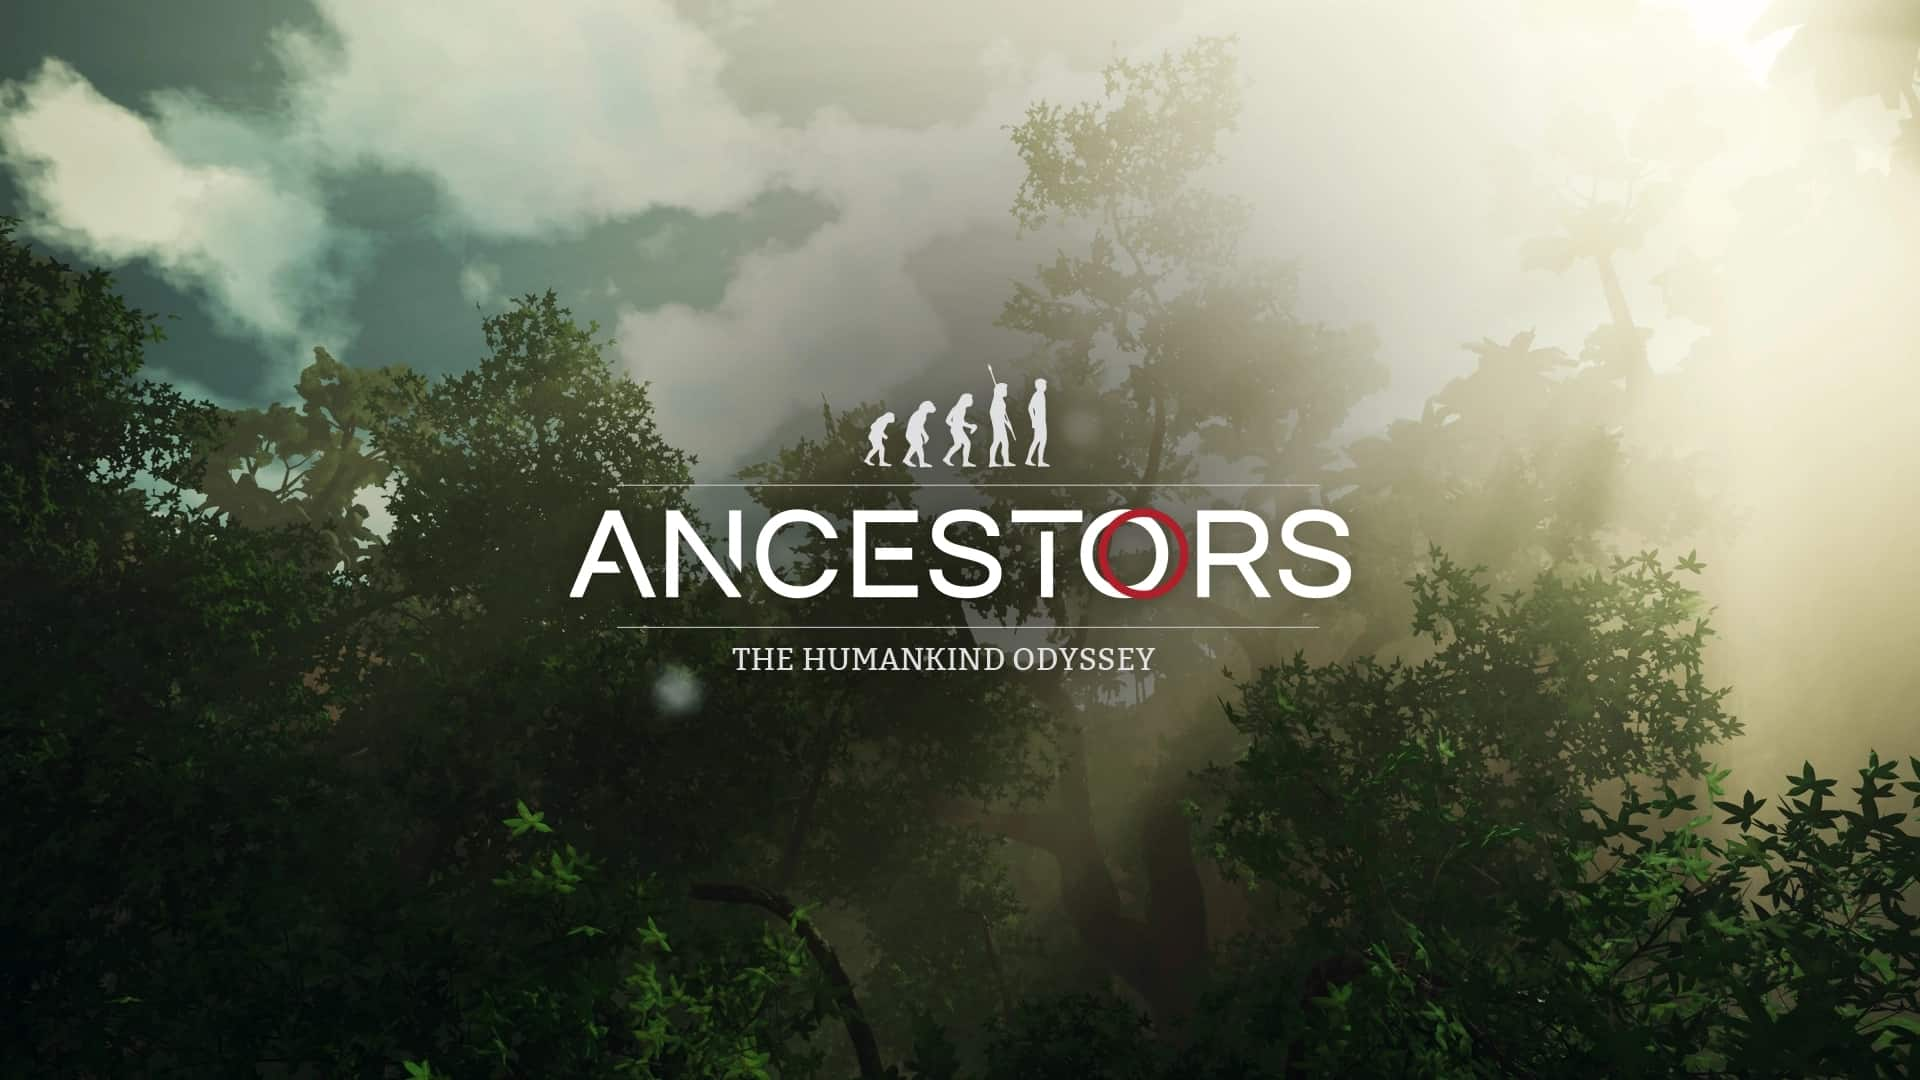 Ancestors: The Humankind Odyssey to Launch for PC On August 27, 2019 And Consoles in December 2019